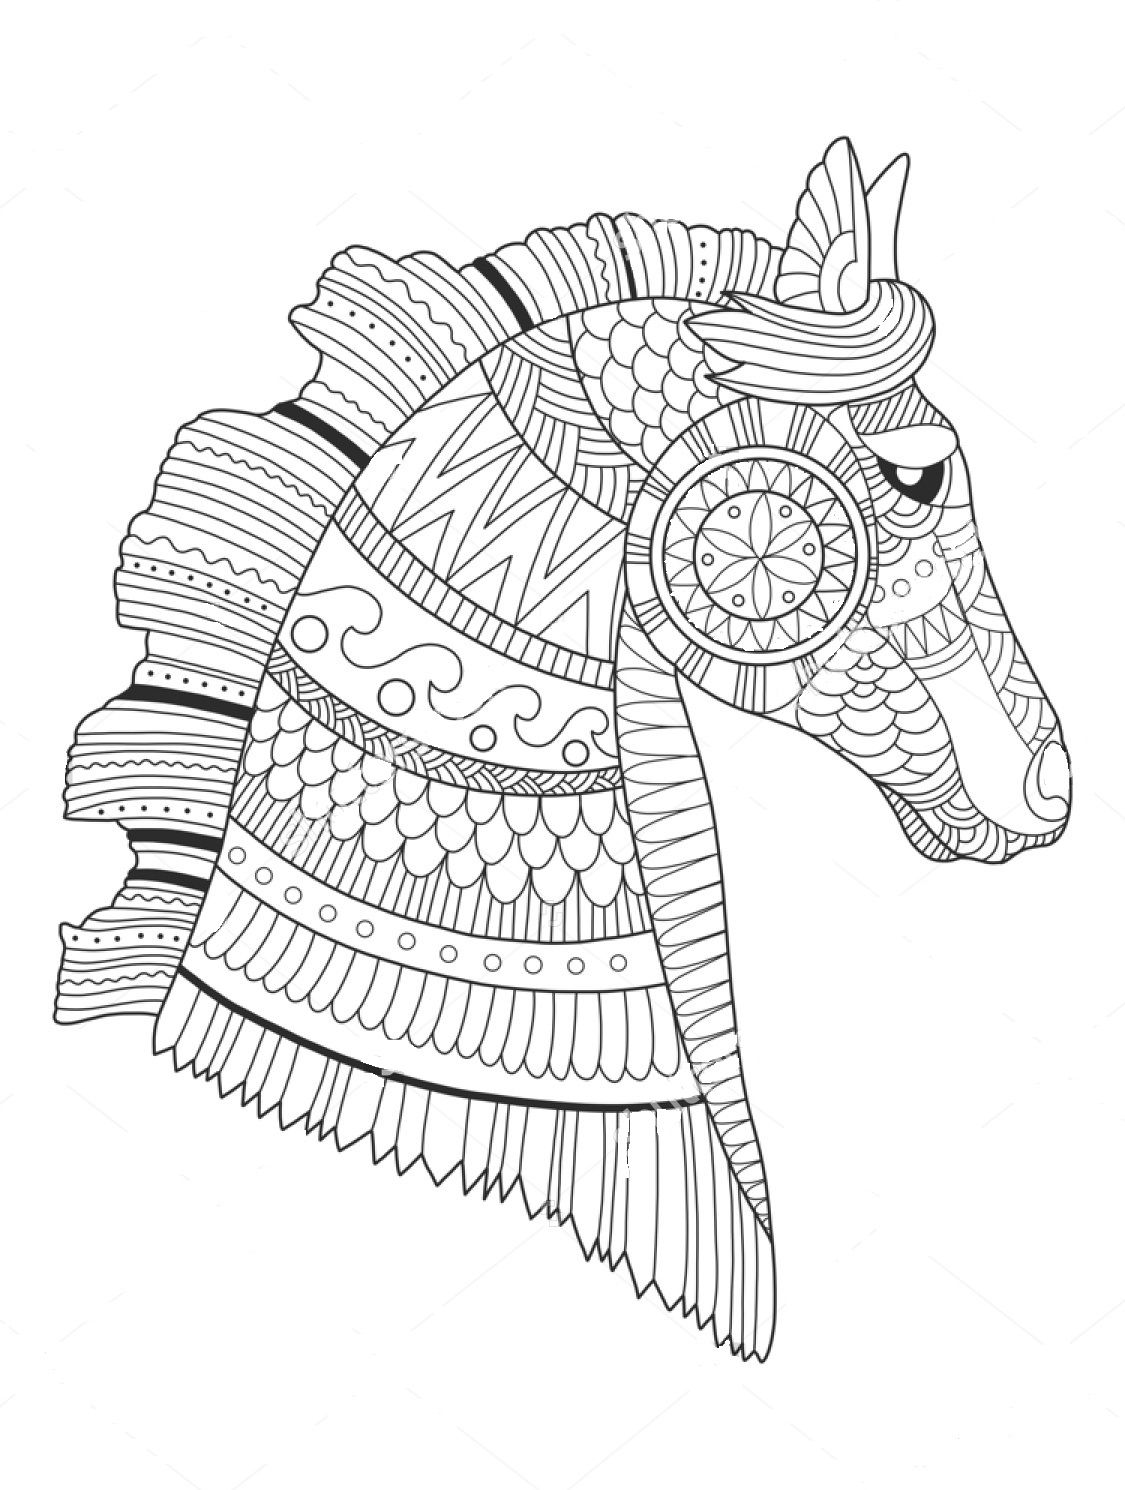 horse zentangle coloring pages zentangle horse sketch coloring page coloring zentangle horse pages